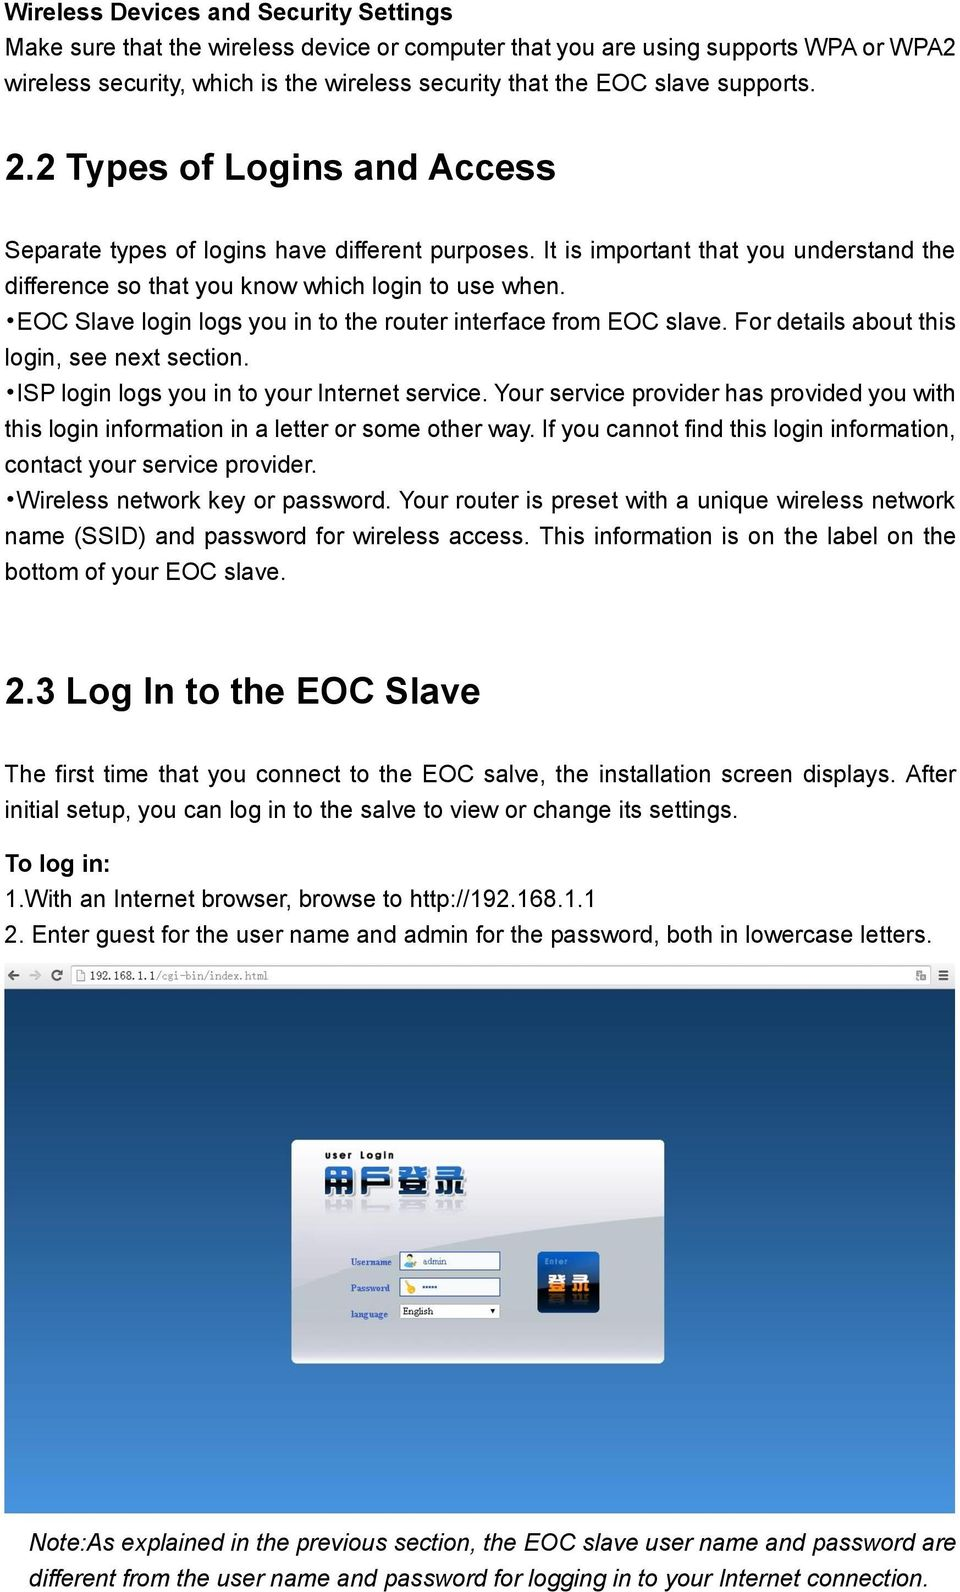 hight resolution of eoc slave login logs you in to the router interface from eoc slave for details